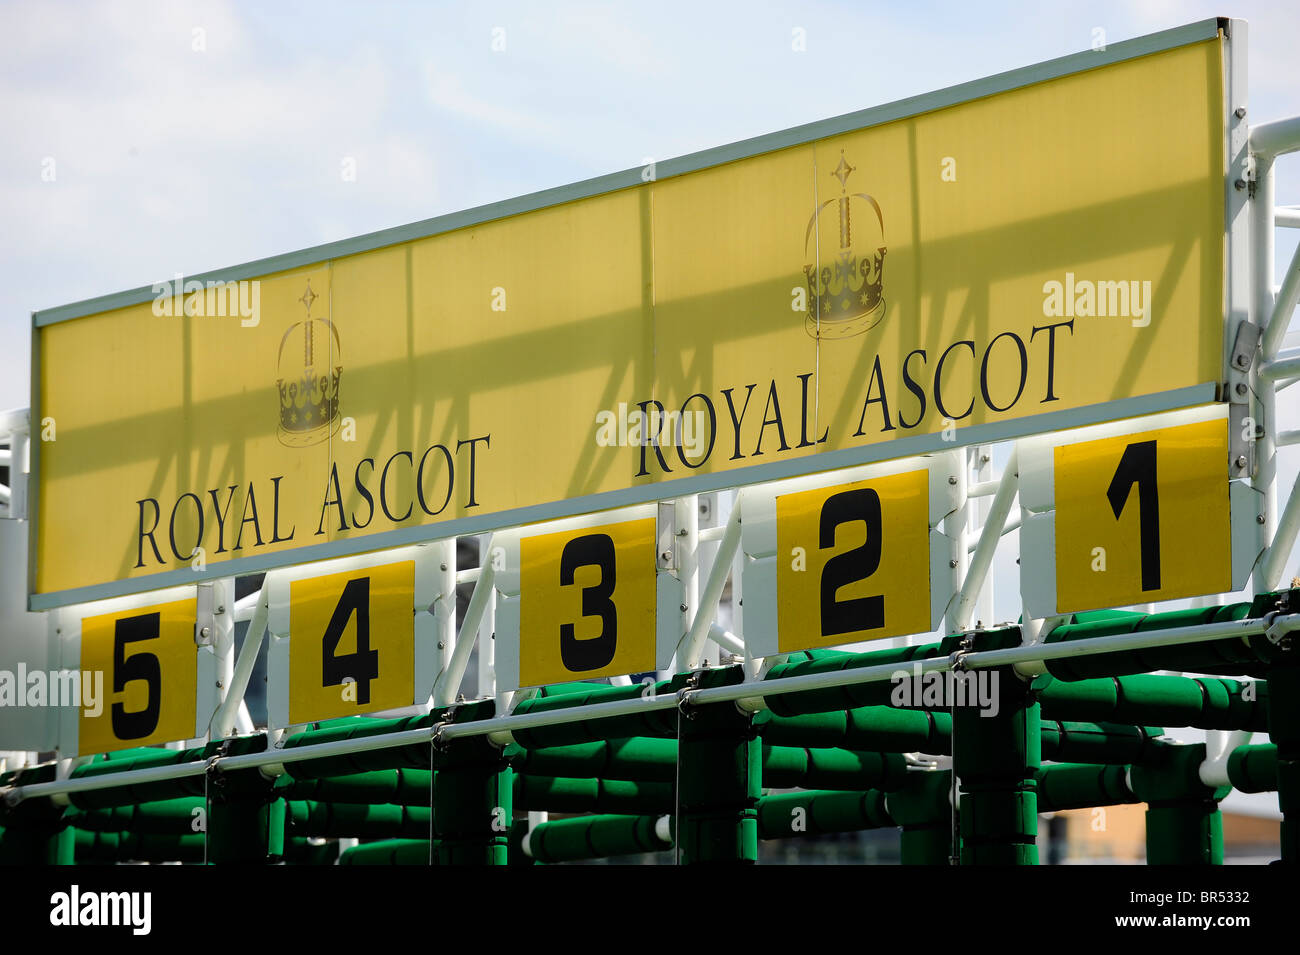 Royal Ascot signage on the tops of the starting stalls during day three of Royal Ascot 2010 - Stock Image